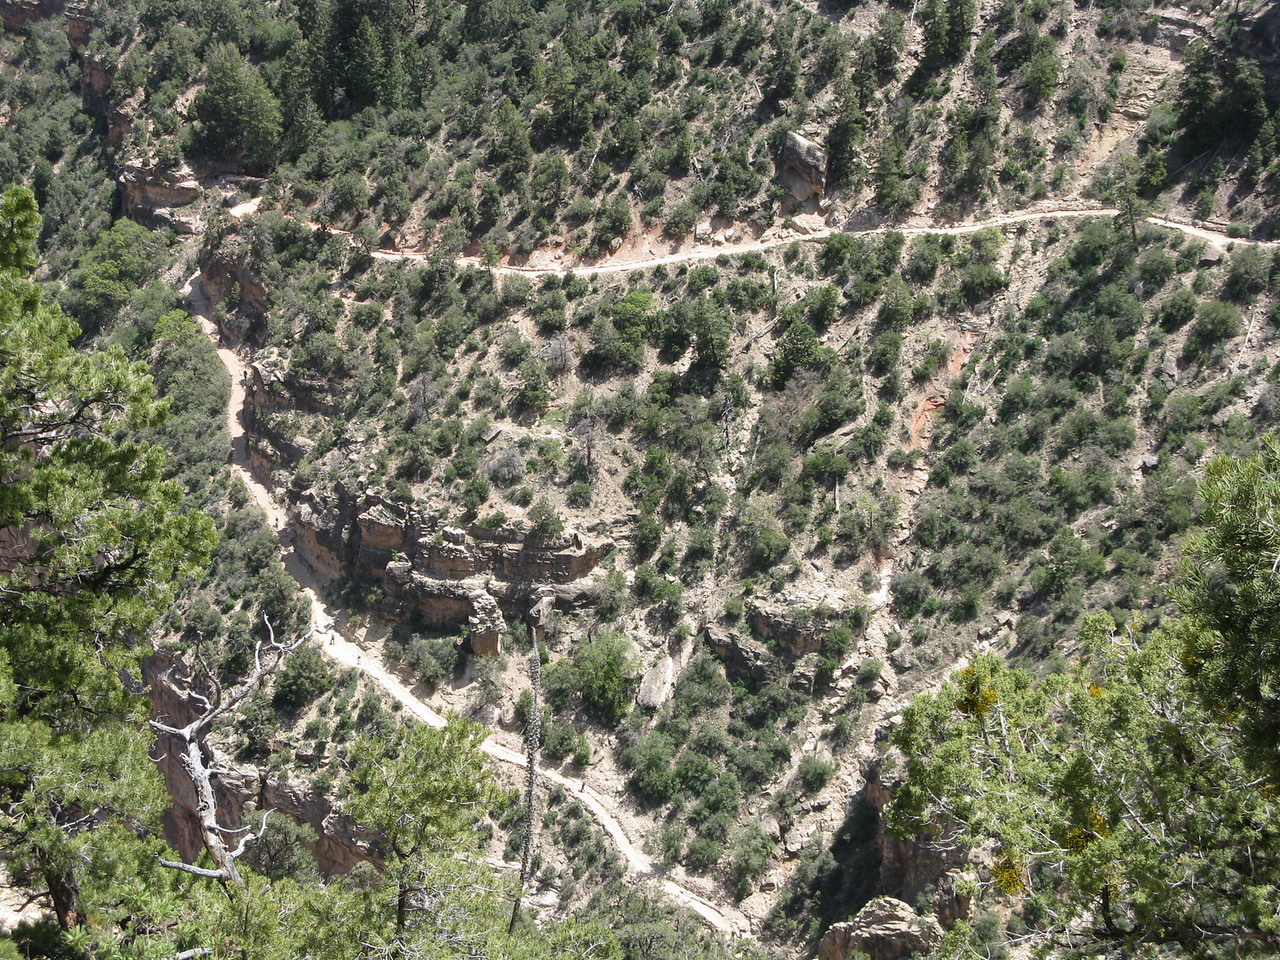 Another steep switchback just below the prior picture.